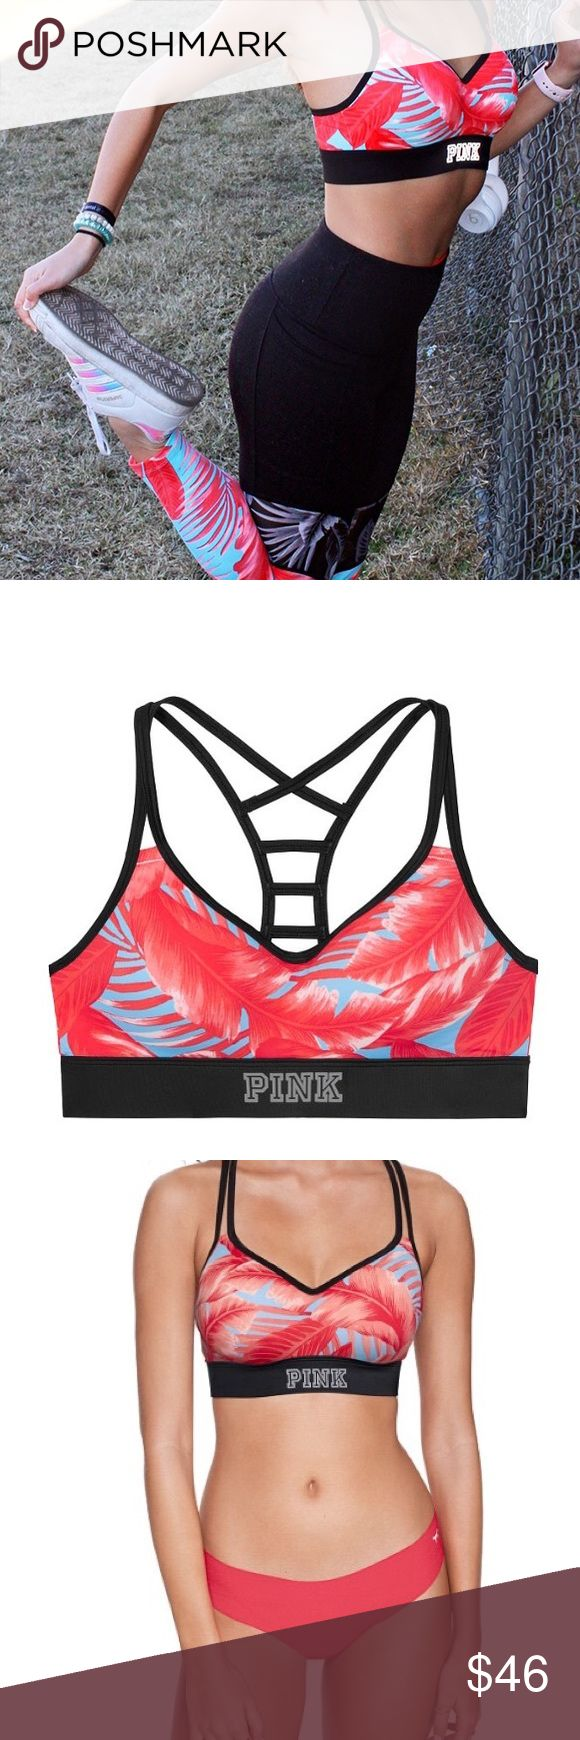 VS Pink ultimate ladder back push-up sports bra Brand new in online packaging- the VS Pink ultimate ladder back push-up sports bra in Size Medium/blue and red palm floral print🔥🔥 This push-up sports bra features a ladder back design and logo details at the bottom band. Premium 4-way stretch fabric provides support during activities.  Push-up Pull onstyle Ladder back details Iconic logo elastic bottom band  Premium 4-way stretch fabric Imported nylon/polyester/spandex  💜I have the matching…